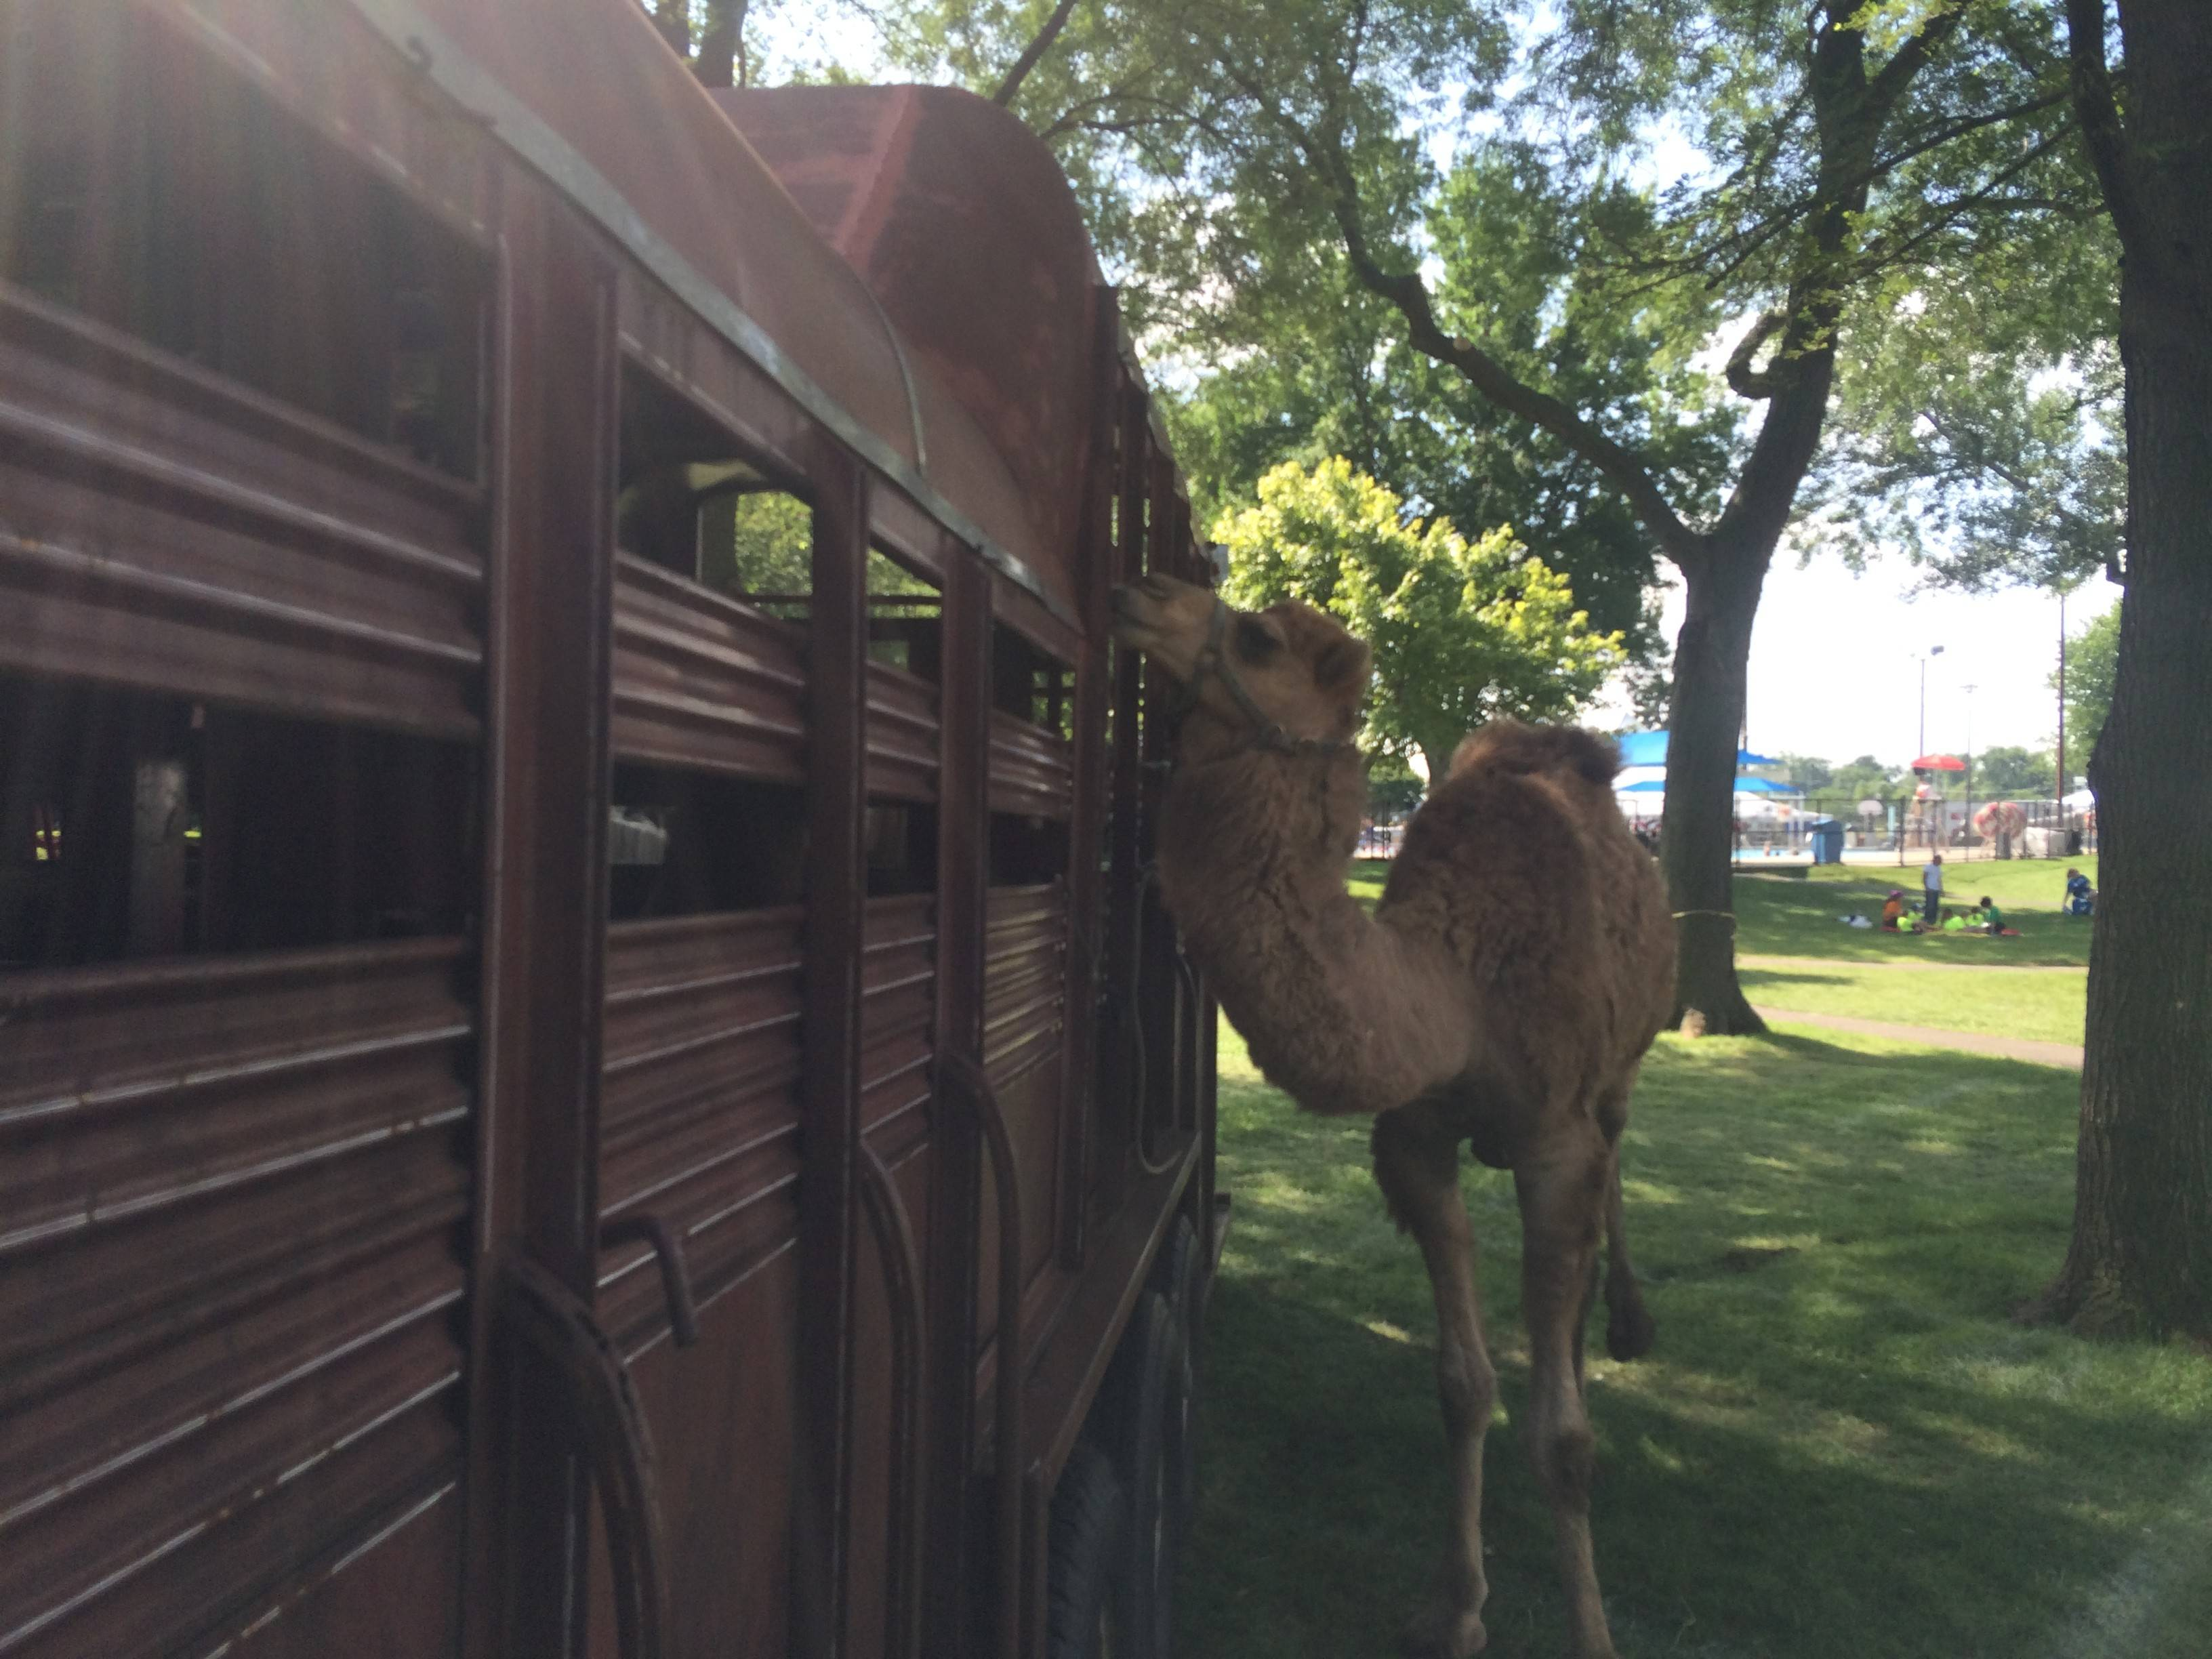 A camel provided by M&A Stables stands outside of its trailer as workers clean up the Frontier Days festival in Arlington Heights on Monday.